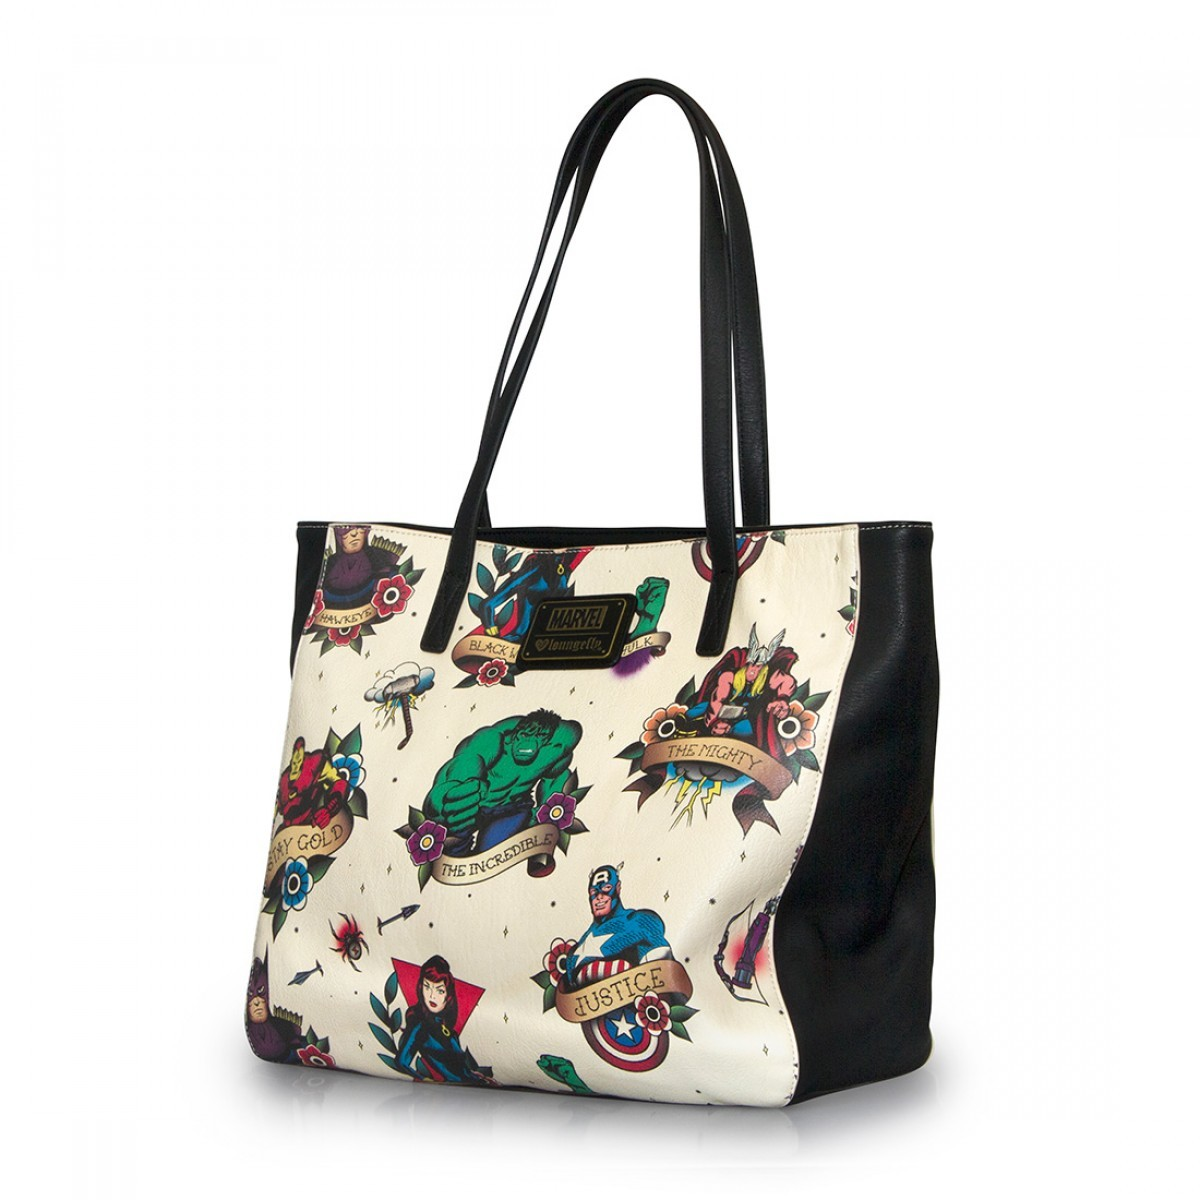 ... Loungefly Marvel Tattoo Flash Print Tote image ... b9c701015a8bd